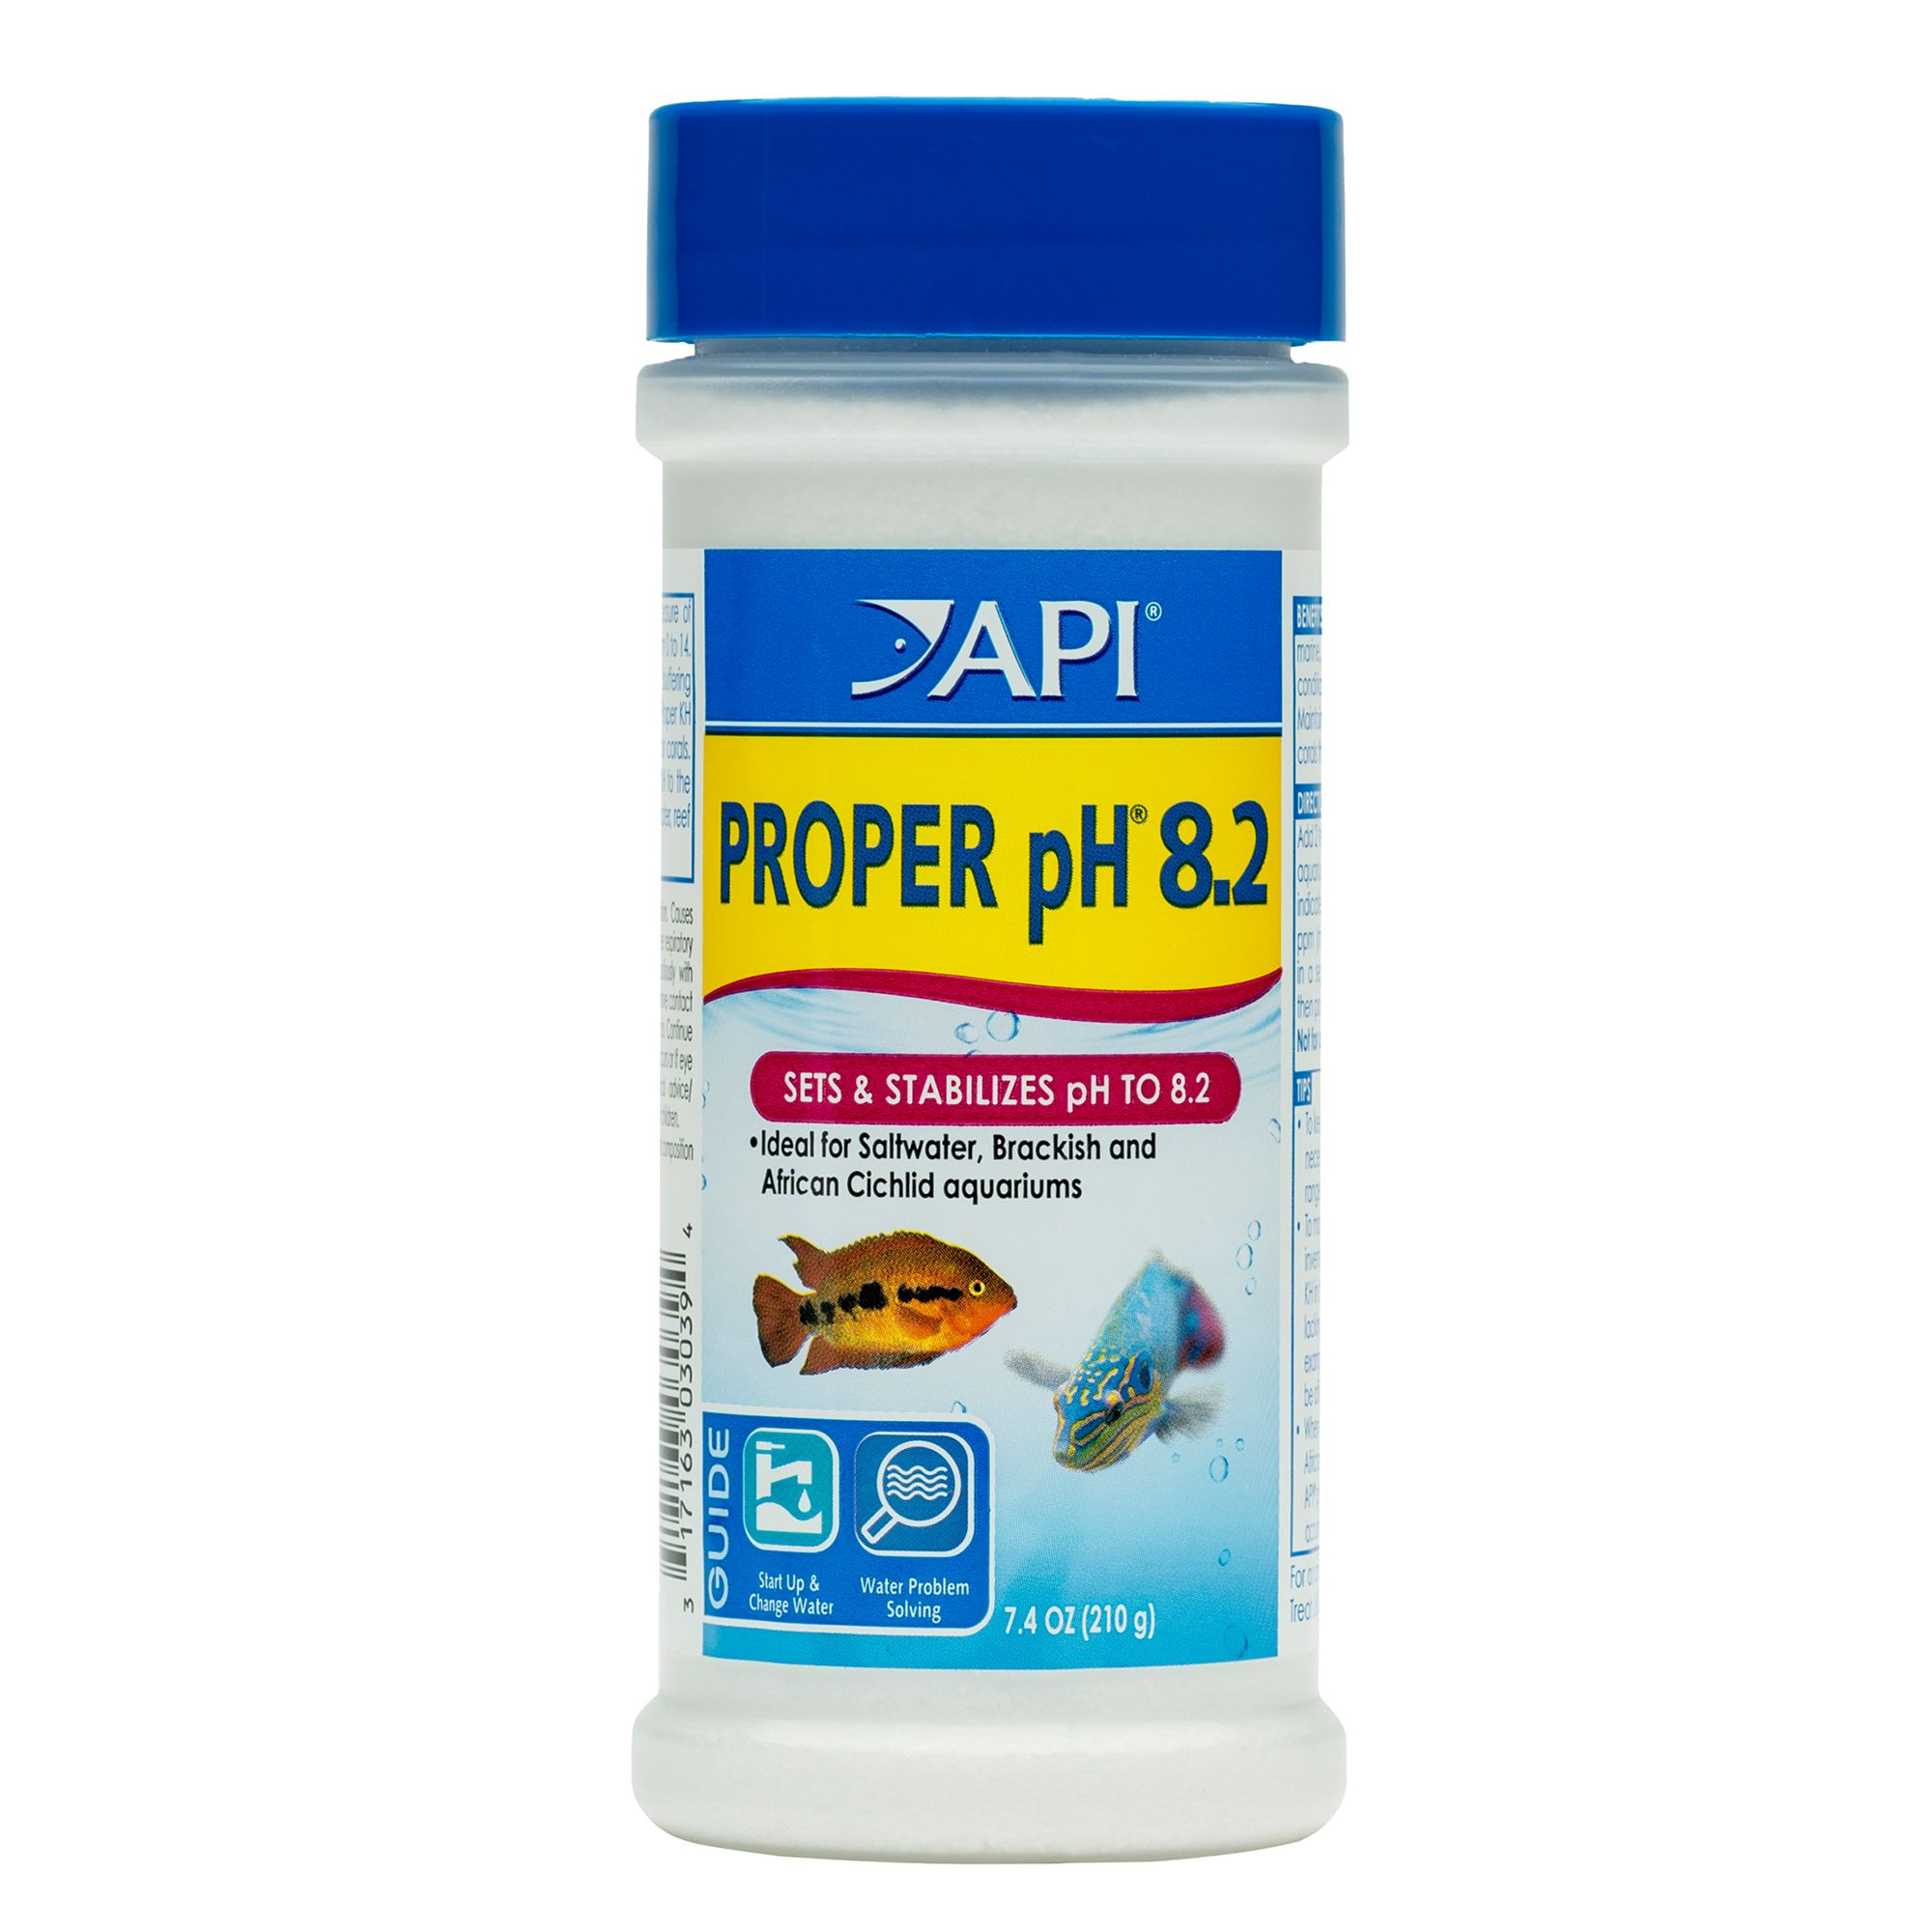 Api Proper Ph 8.2 Aquarium Water Ph Conditioner